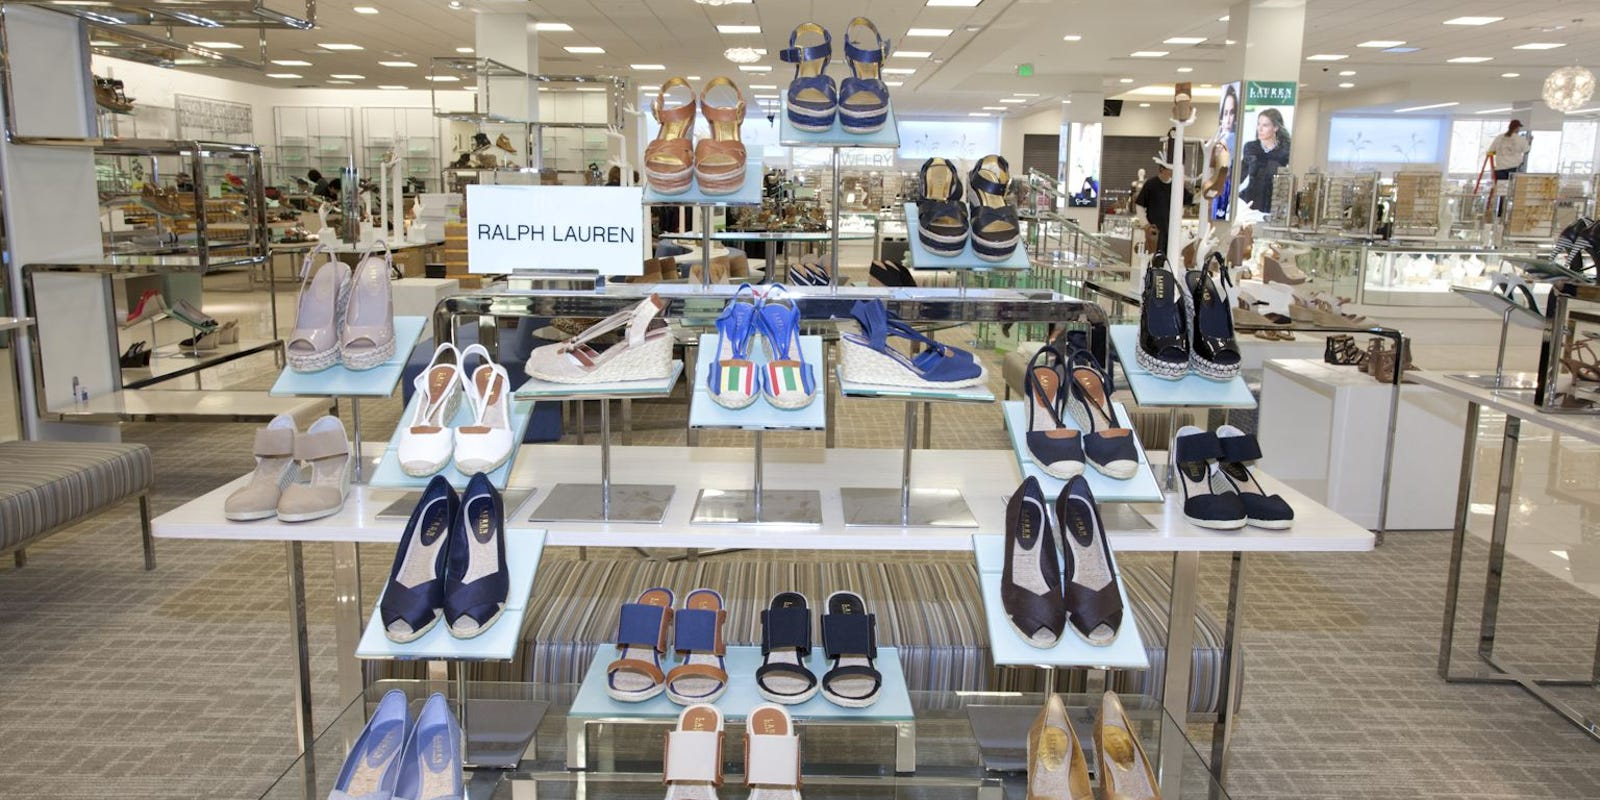 Belk Store Chain Filing for Chapter 11 Bankruptcy